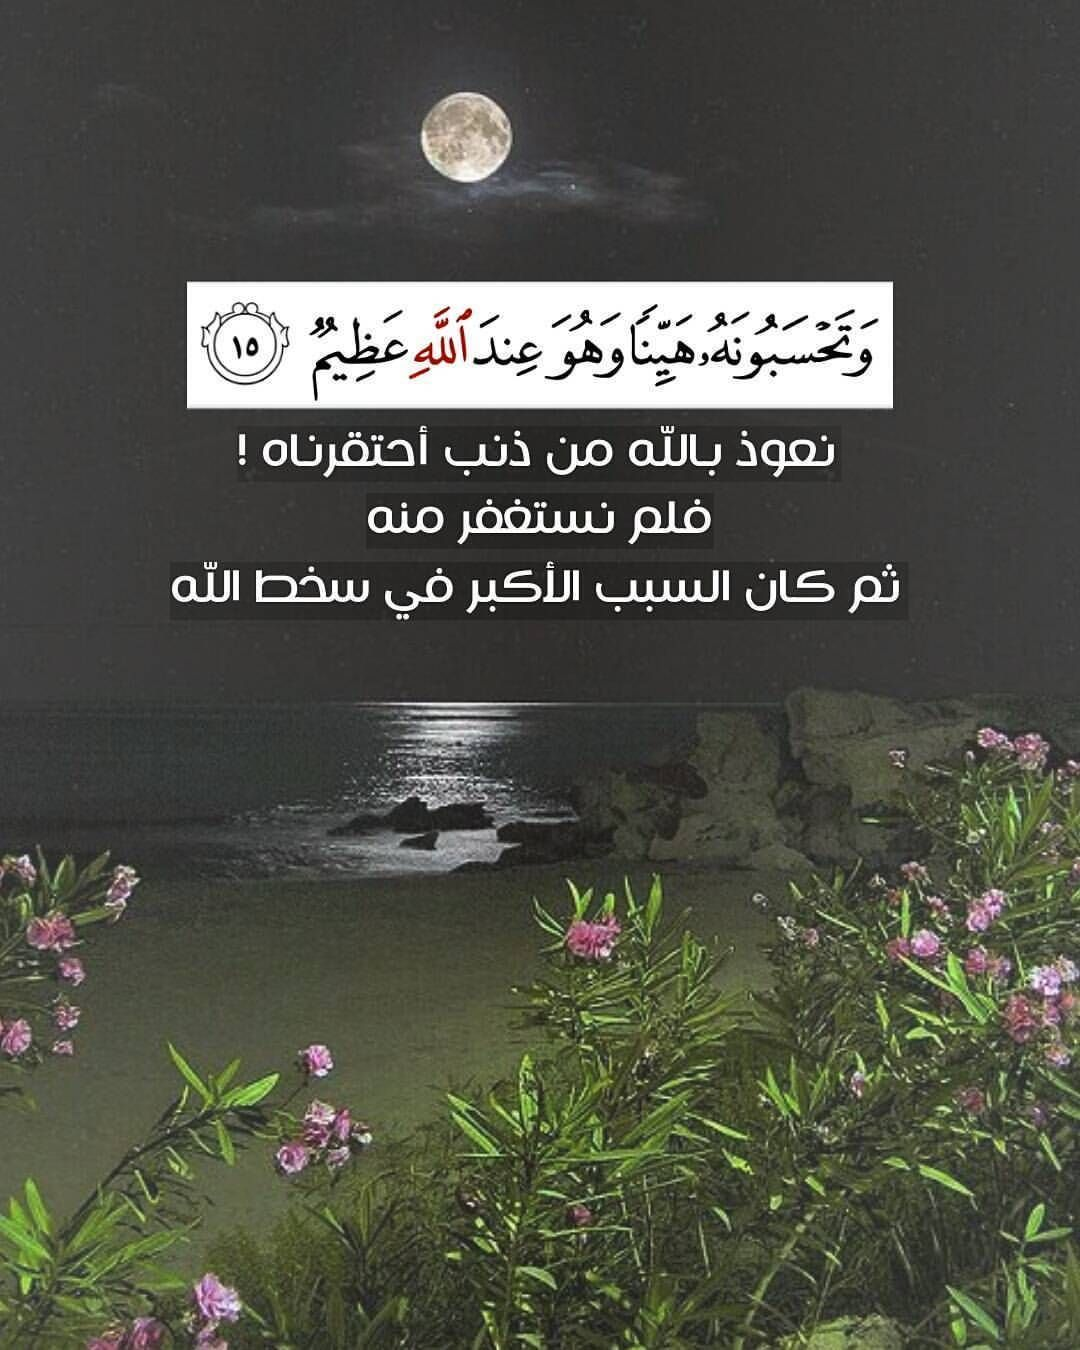 Pin By Alhajip Almansor On مواعظ Sermons Quran Quotes Verses Quran Quotes Beautiful Words